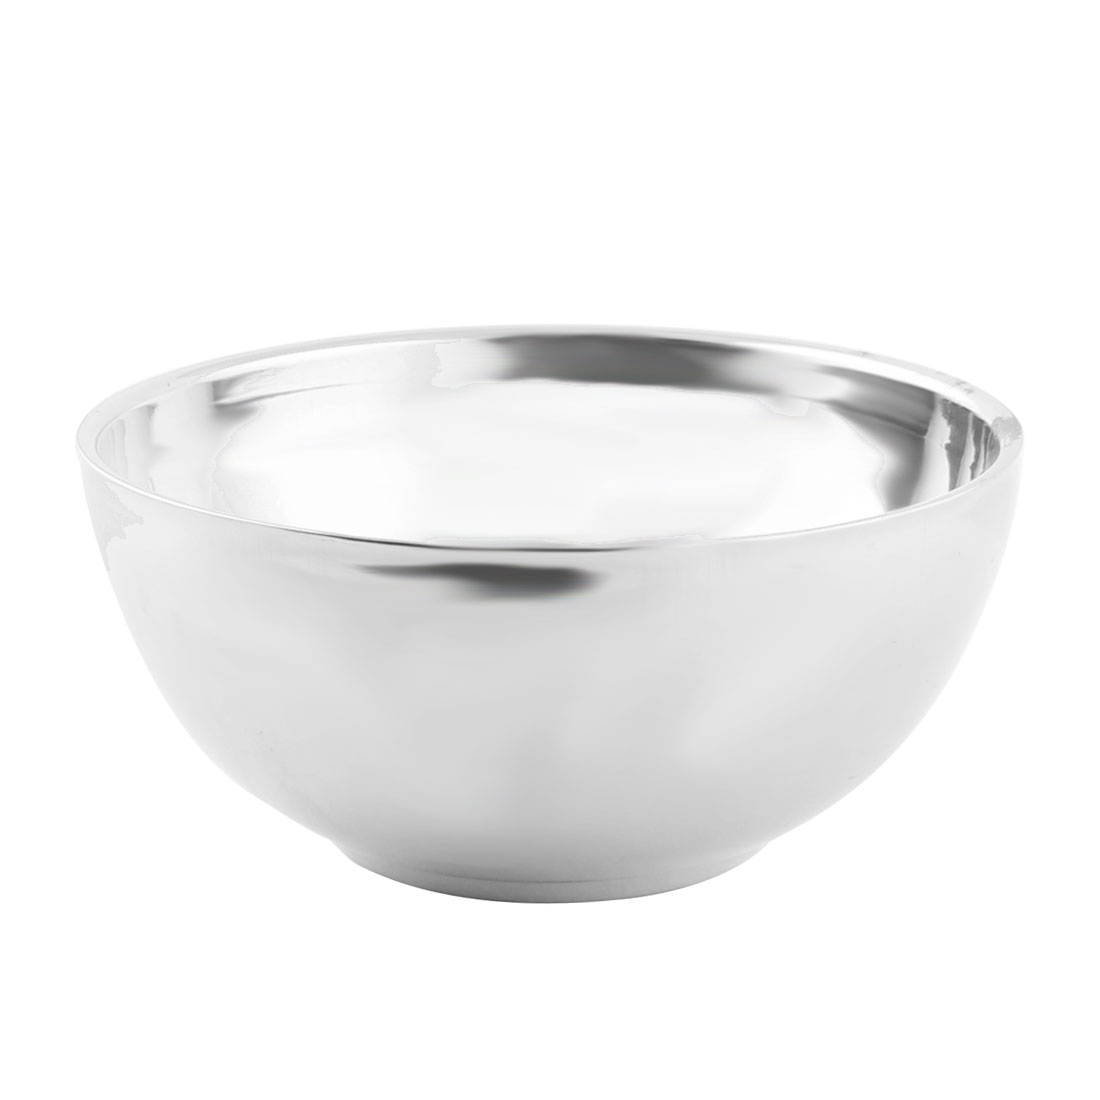 Home Kitchen Stainless Steel Tableware Hot Heat Resistant Dinner Soup Rice Bowl 11.5cm Dia